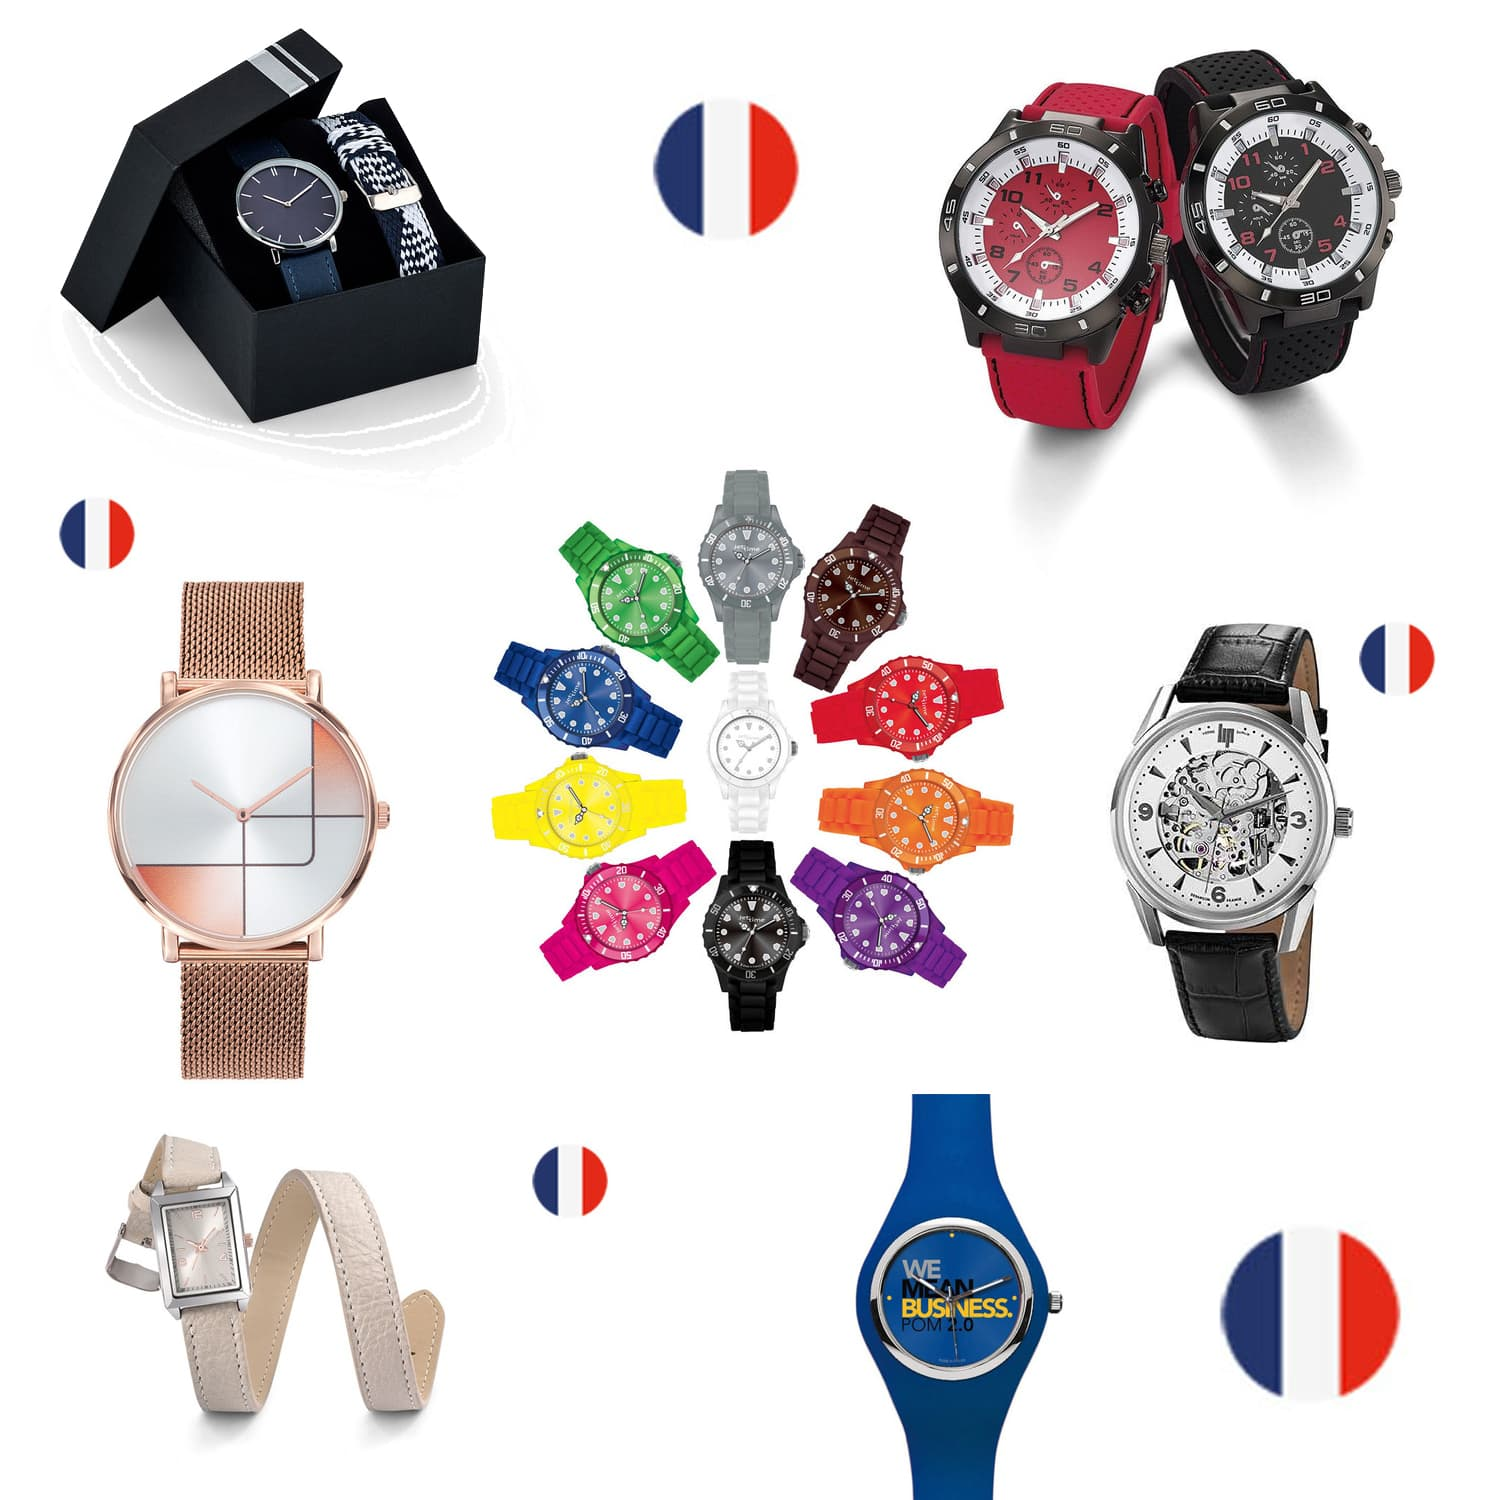 Montres personnalisées Made in France